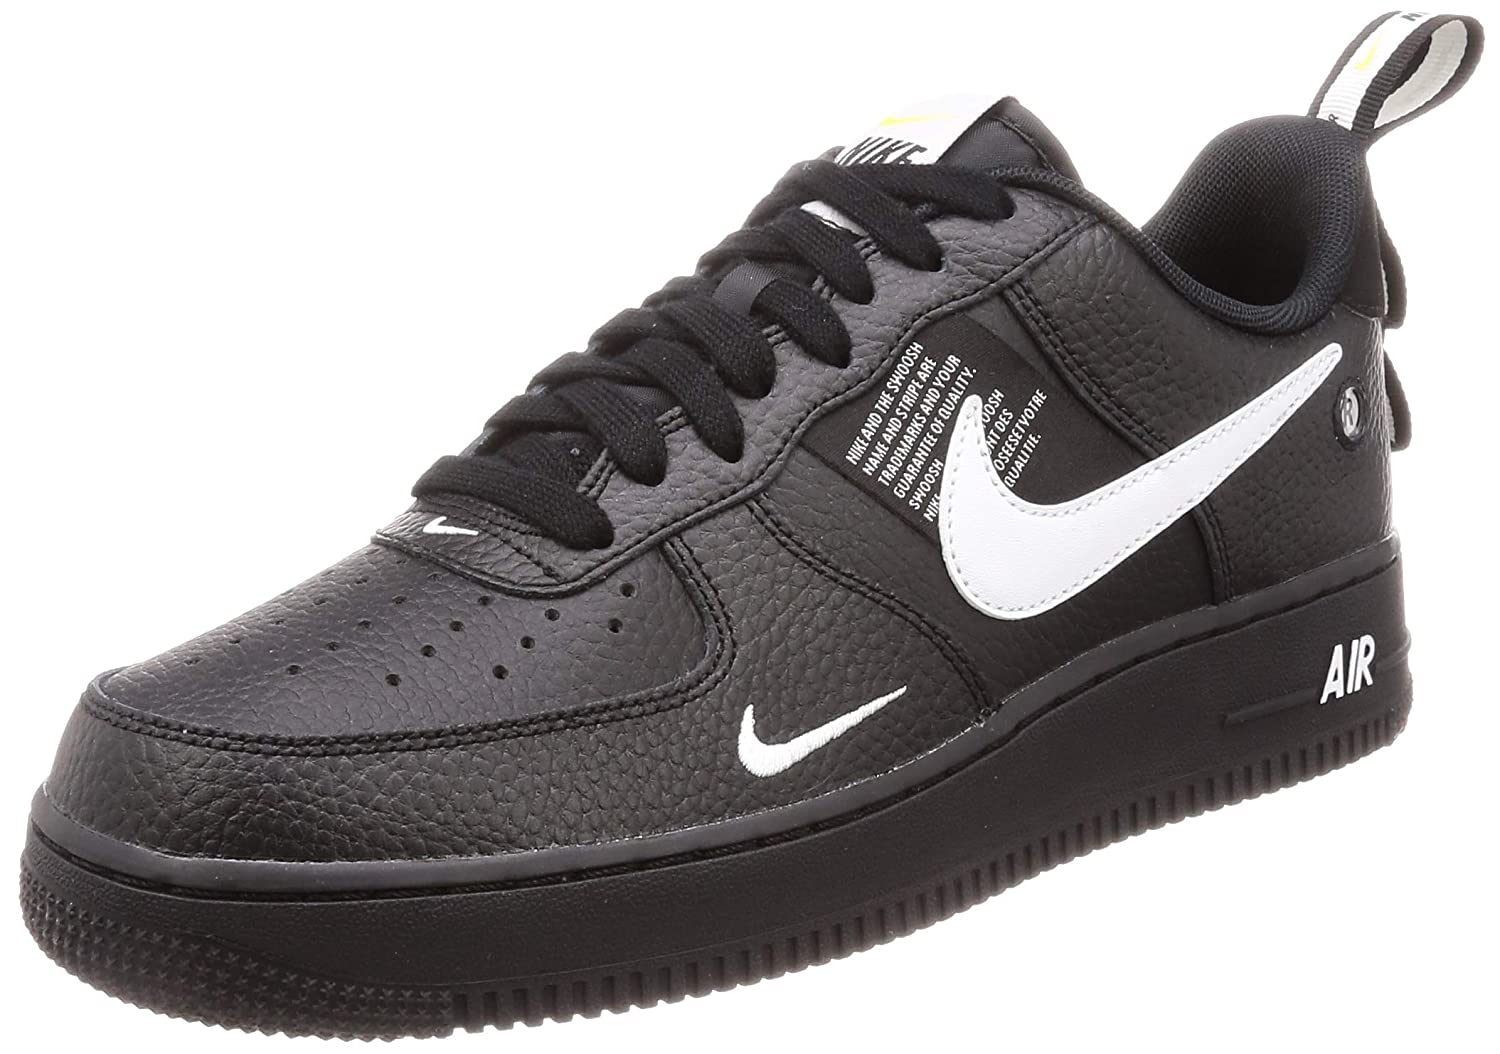 Nike Men's Air Force 1 '07 Lv8 Utility Gymnastics Shoes